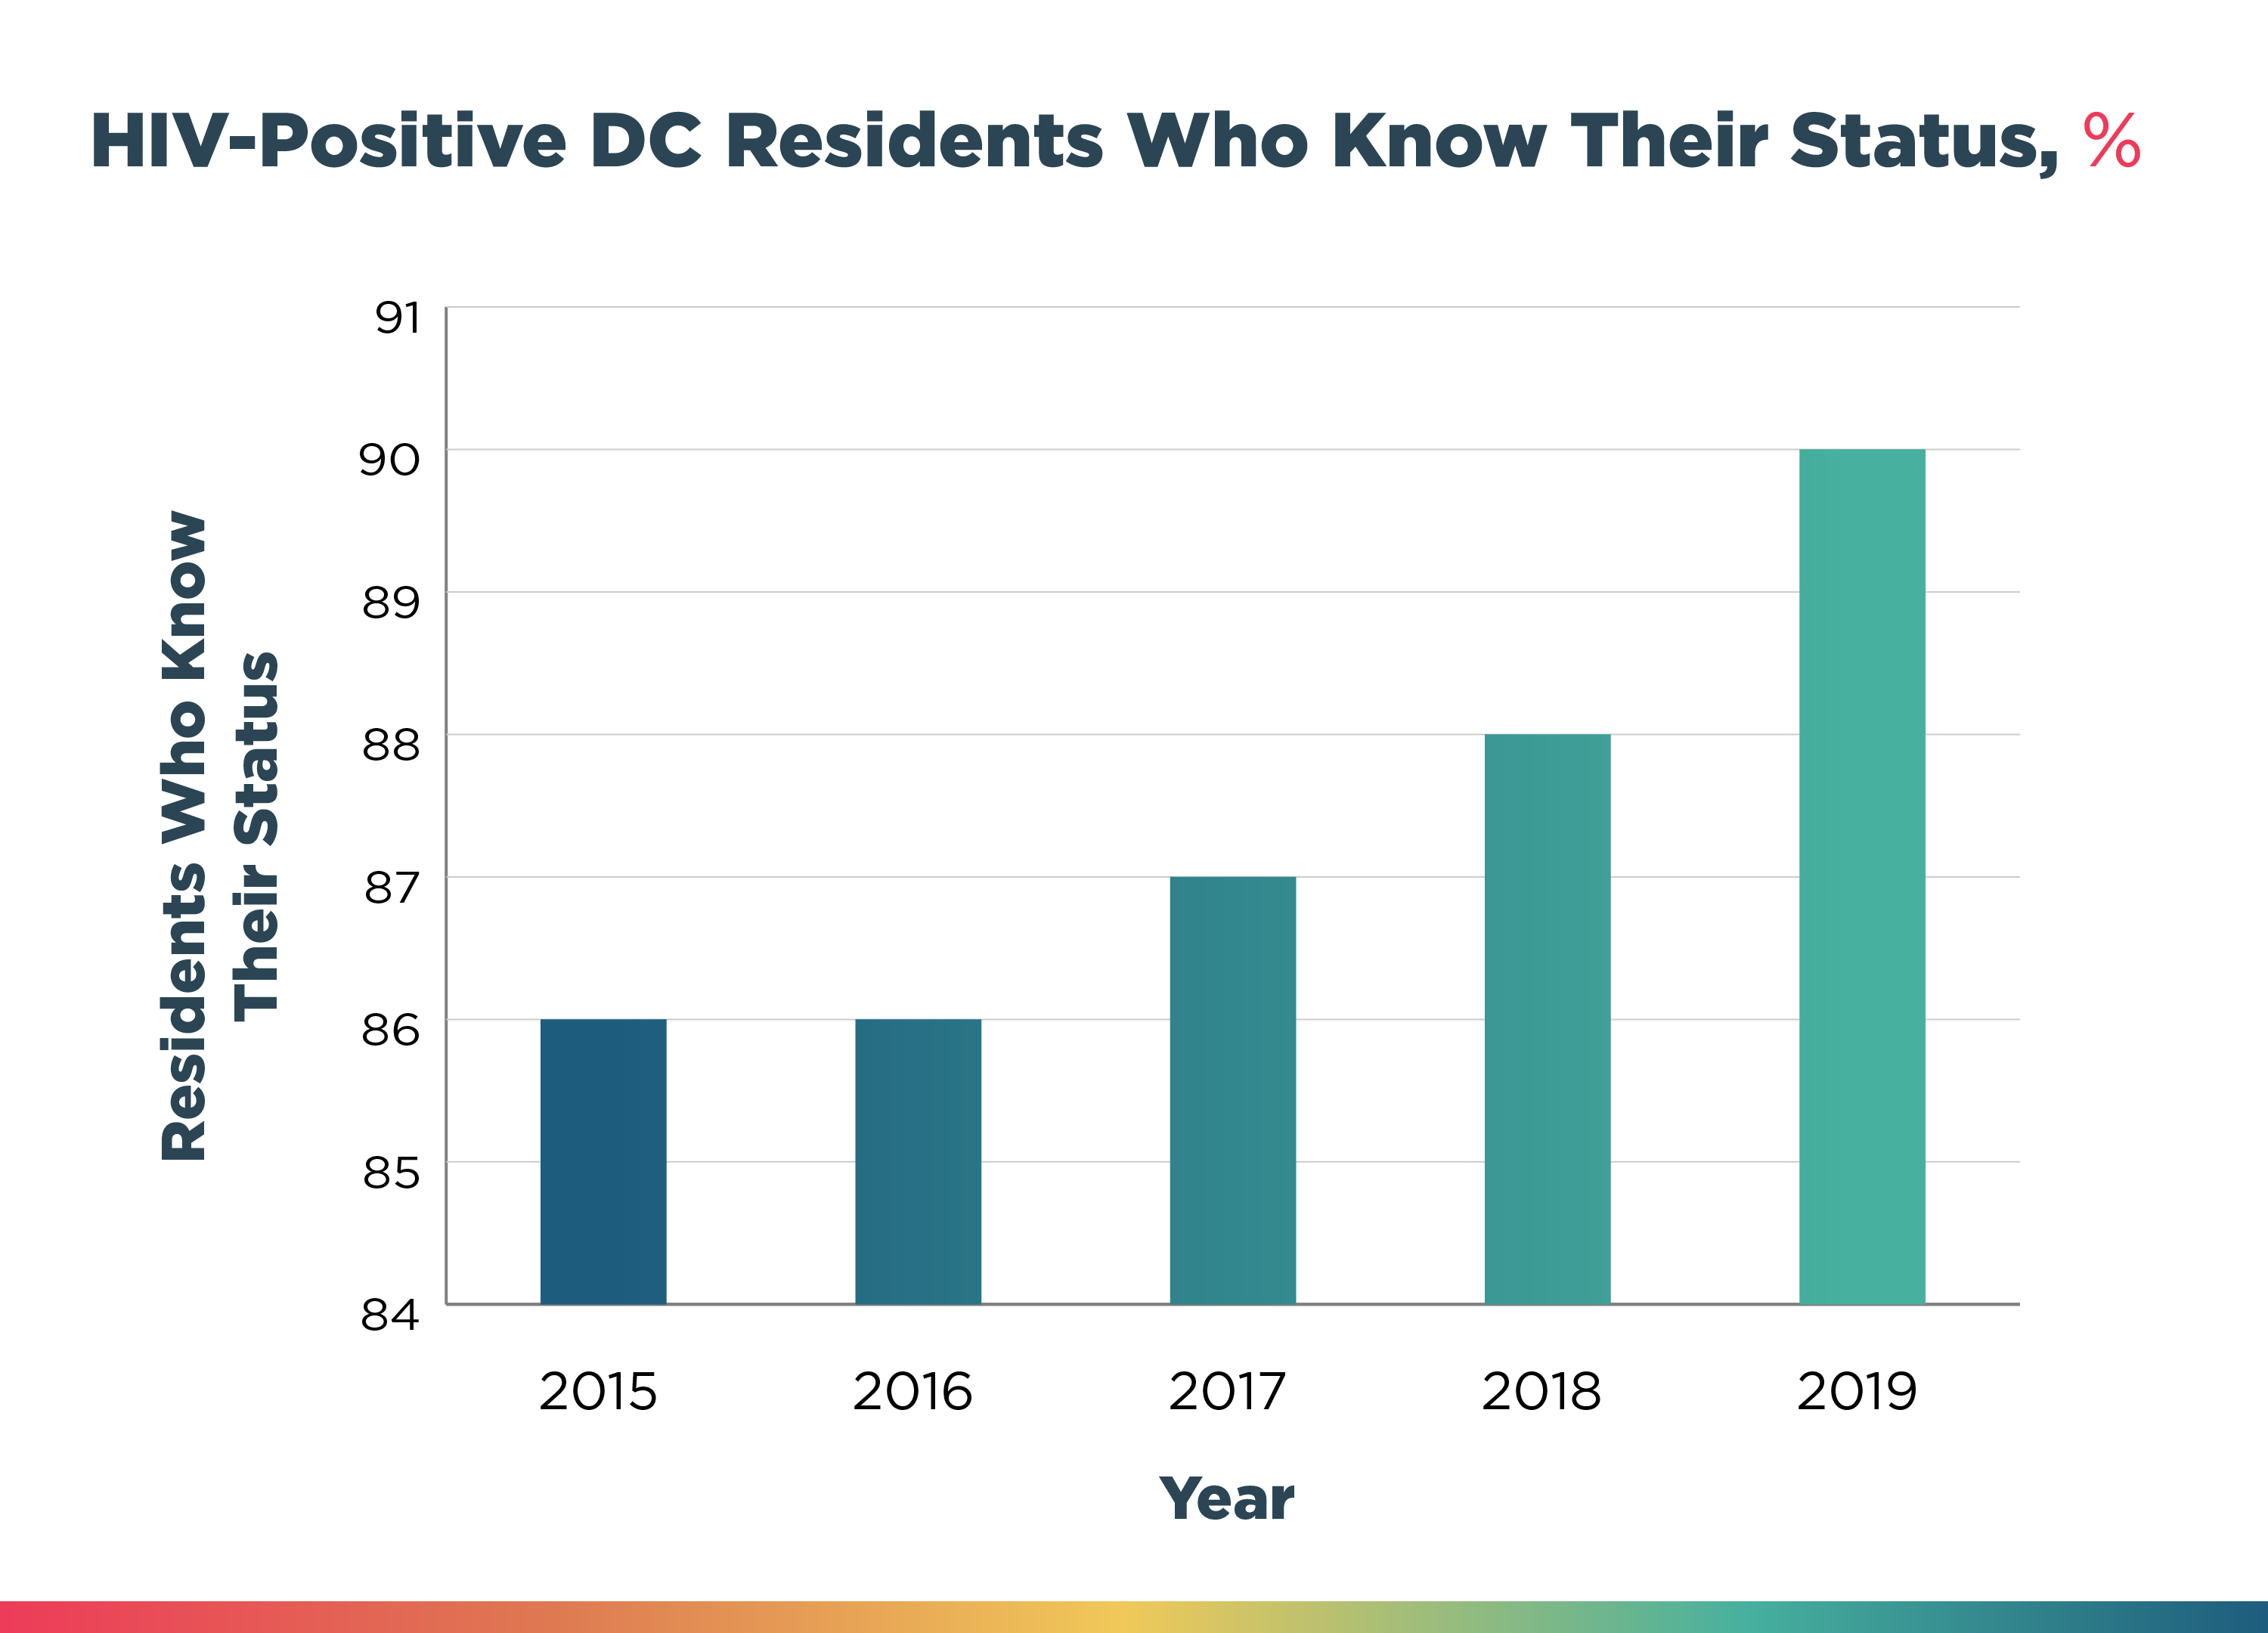 HIV-Postive DC Residents Who Know Their Status